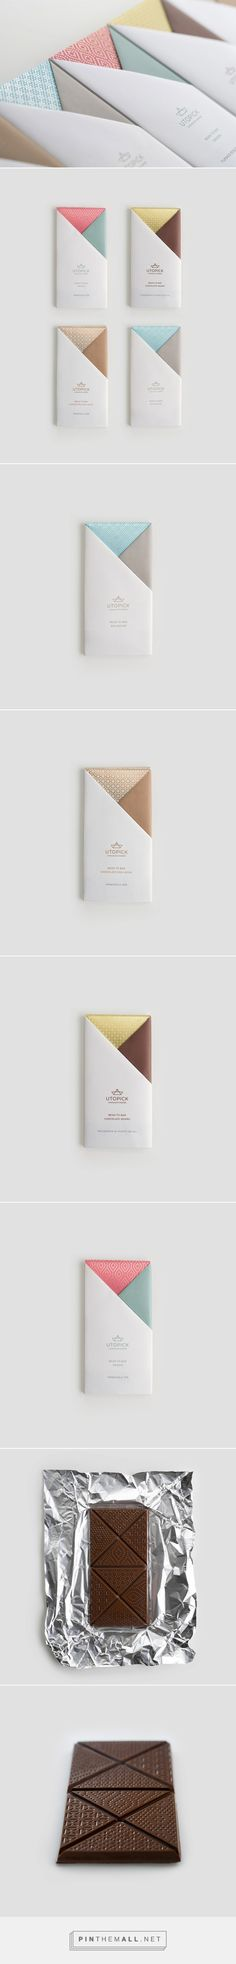 Utopick Chocolates Branding by Lavernia & Cienfuegos | Inspiration Grid | Design Inspiration - created via https://pinthemall.net